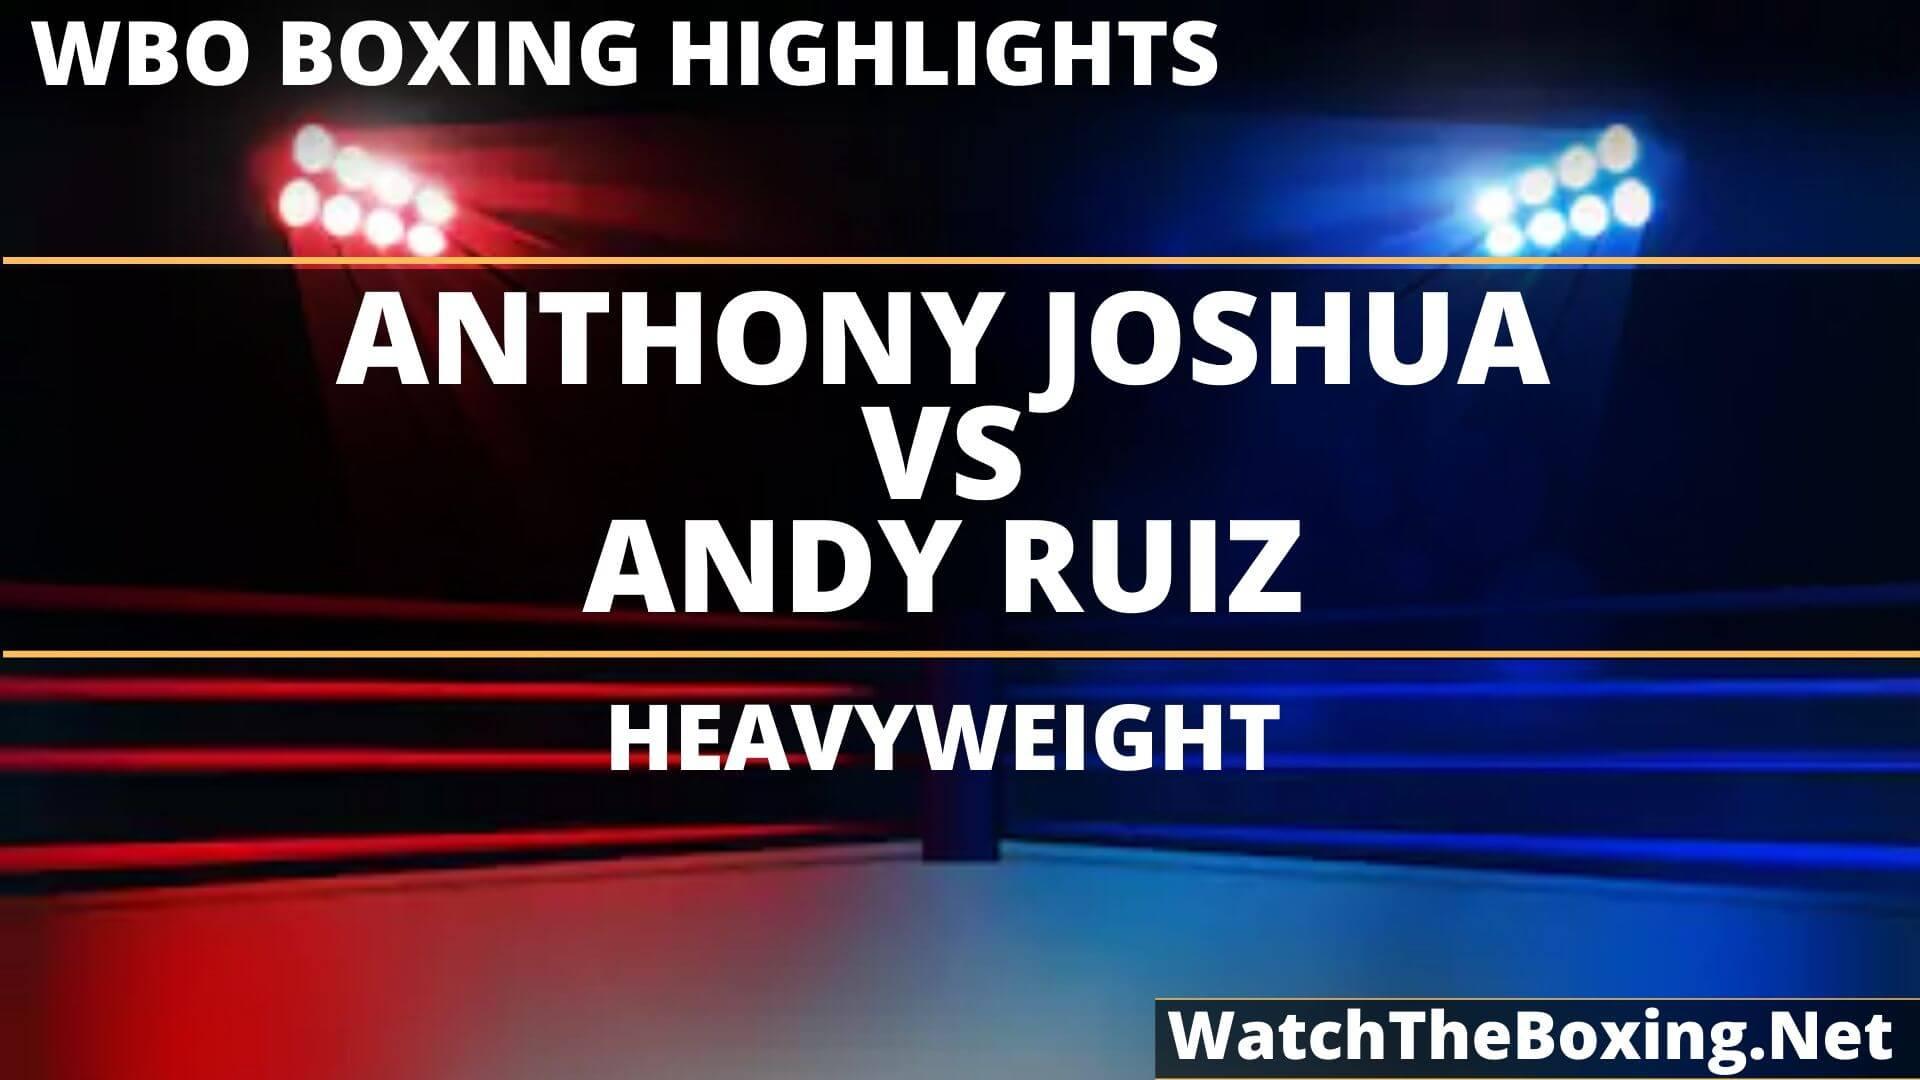 Anthony Joshua Vs Andy Ruiz Highlights 2019